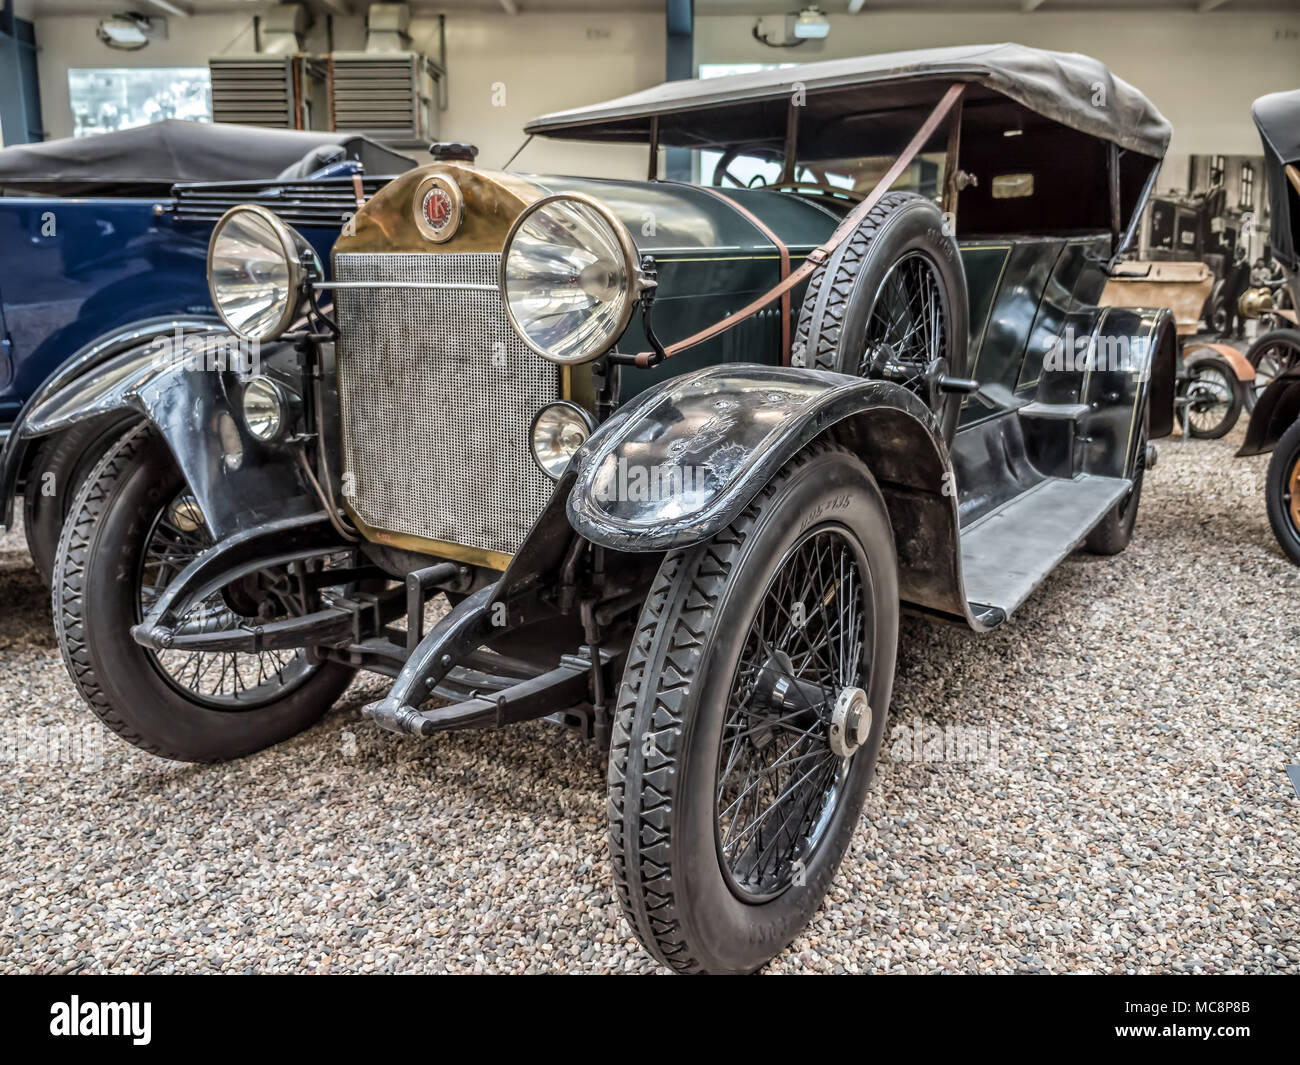 PRAGUE, CZECH REPUBLIC - MARCH 8 2017: Oldtimer Laurin & Klement RK-M, manufactured between 1913 and 1921, showcased in the National Technical Museum  - Stock Image